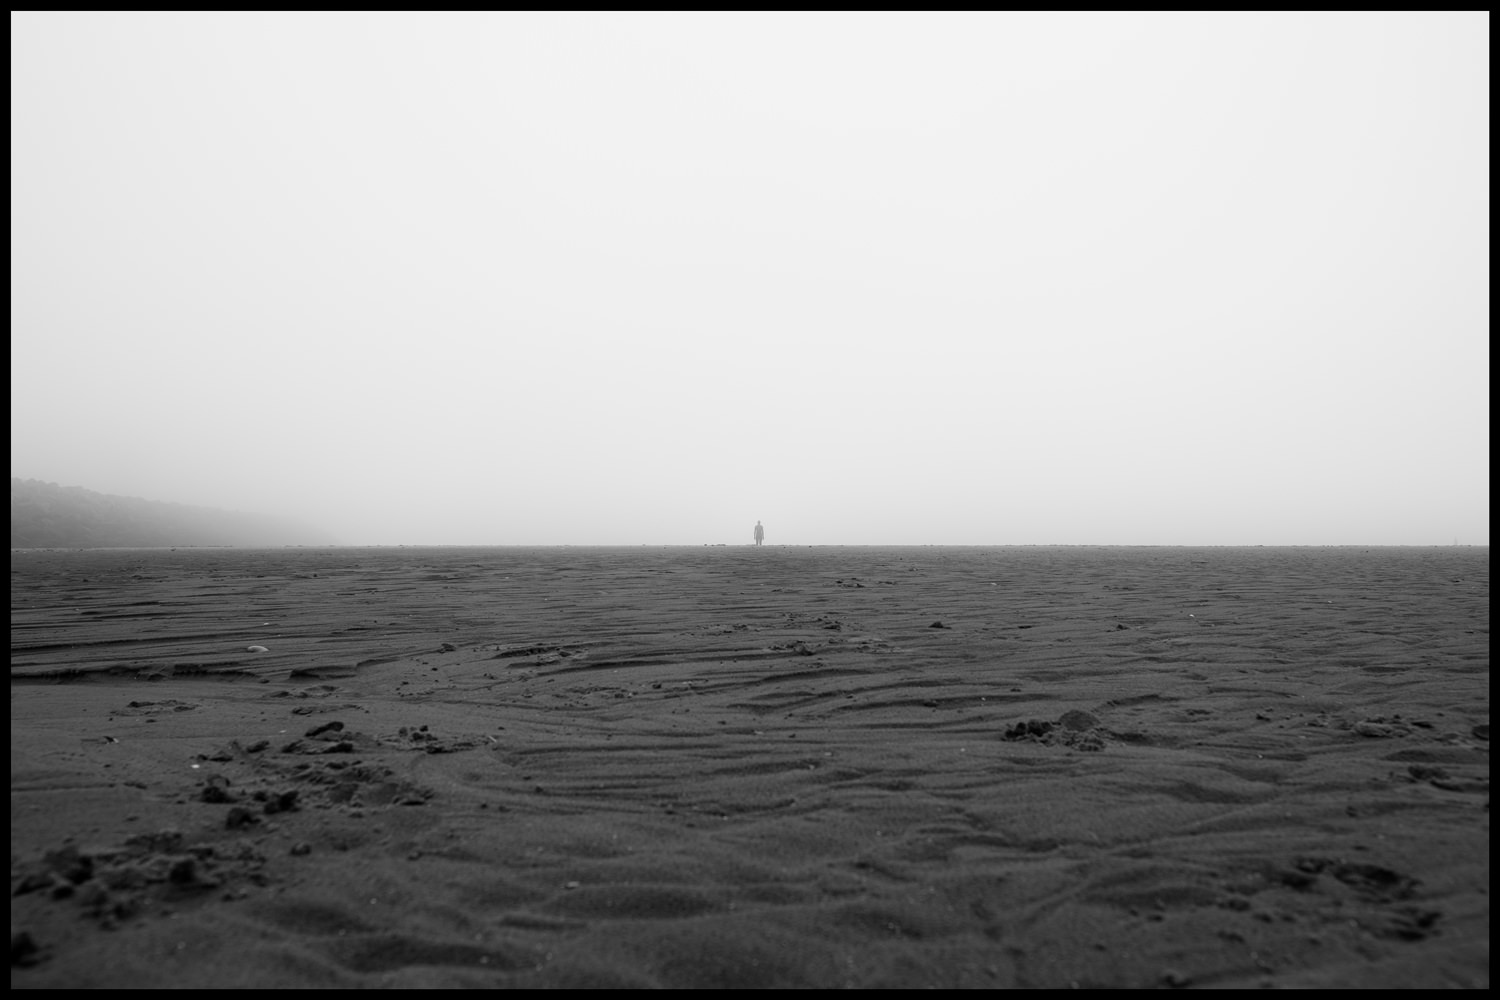 One of the iron men statues on the horizon with an expanse of sand in the foreground